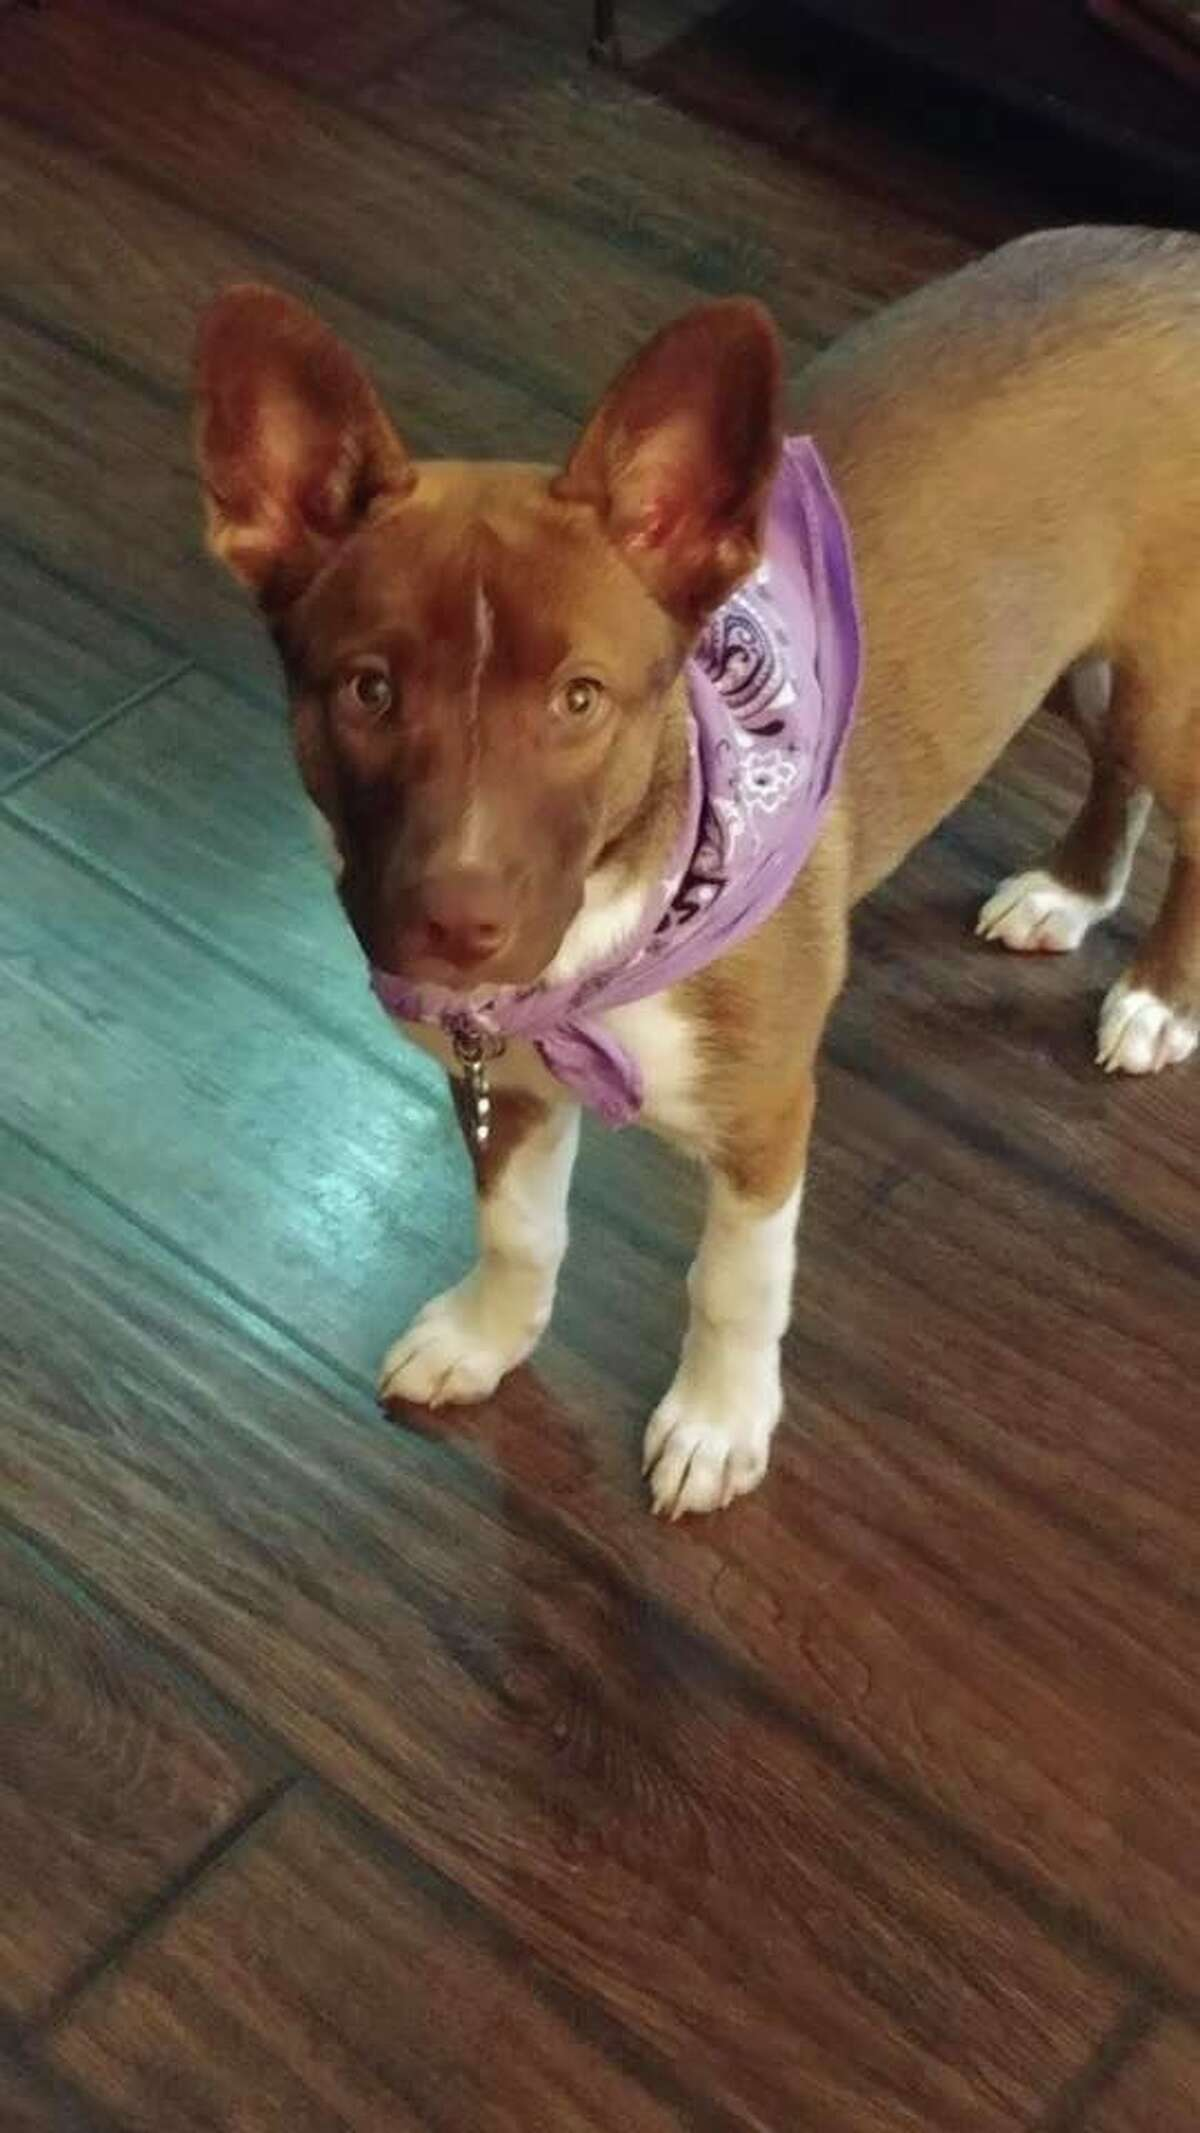 """""""Dakota is a Husky mix and we rescued her from CAPS last summer. She was 3 months old when we got her. We didn't know when we adopted her she had been exposed to Parvo. She became deathly ill but after two weeks and lots of money and tears, she pulled through."""""""